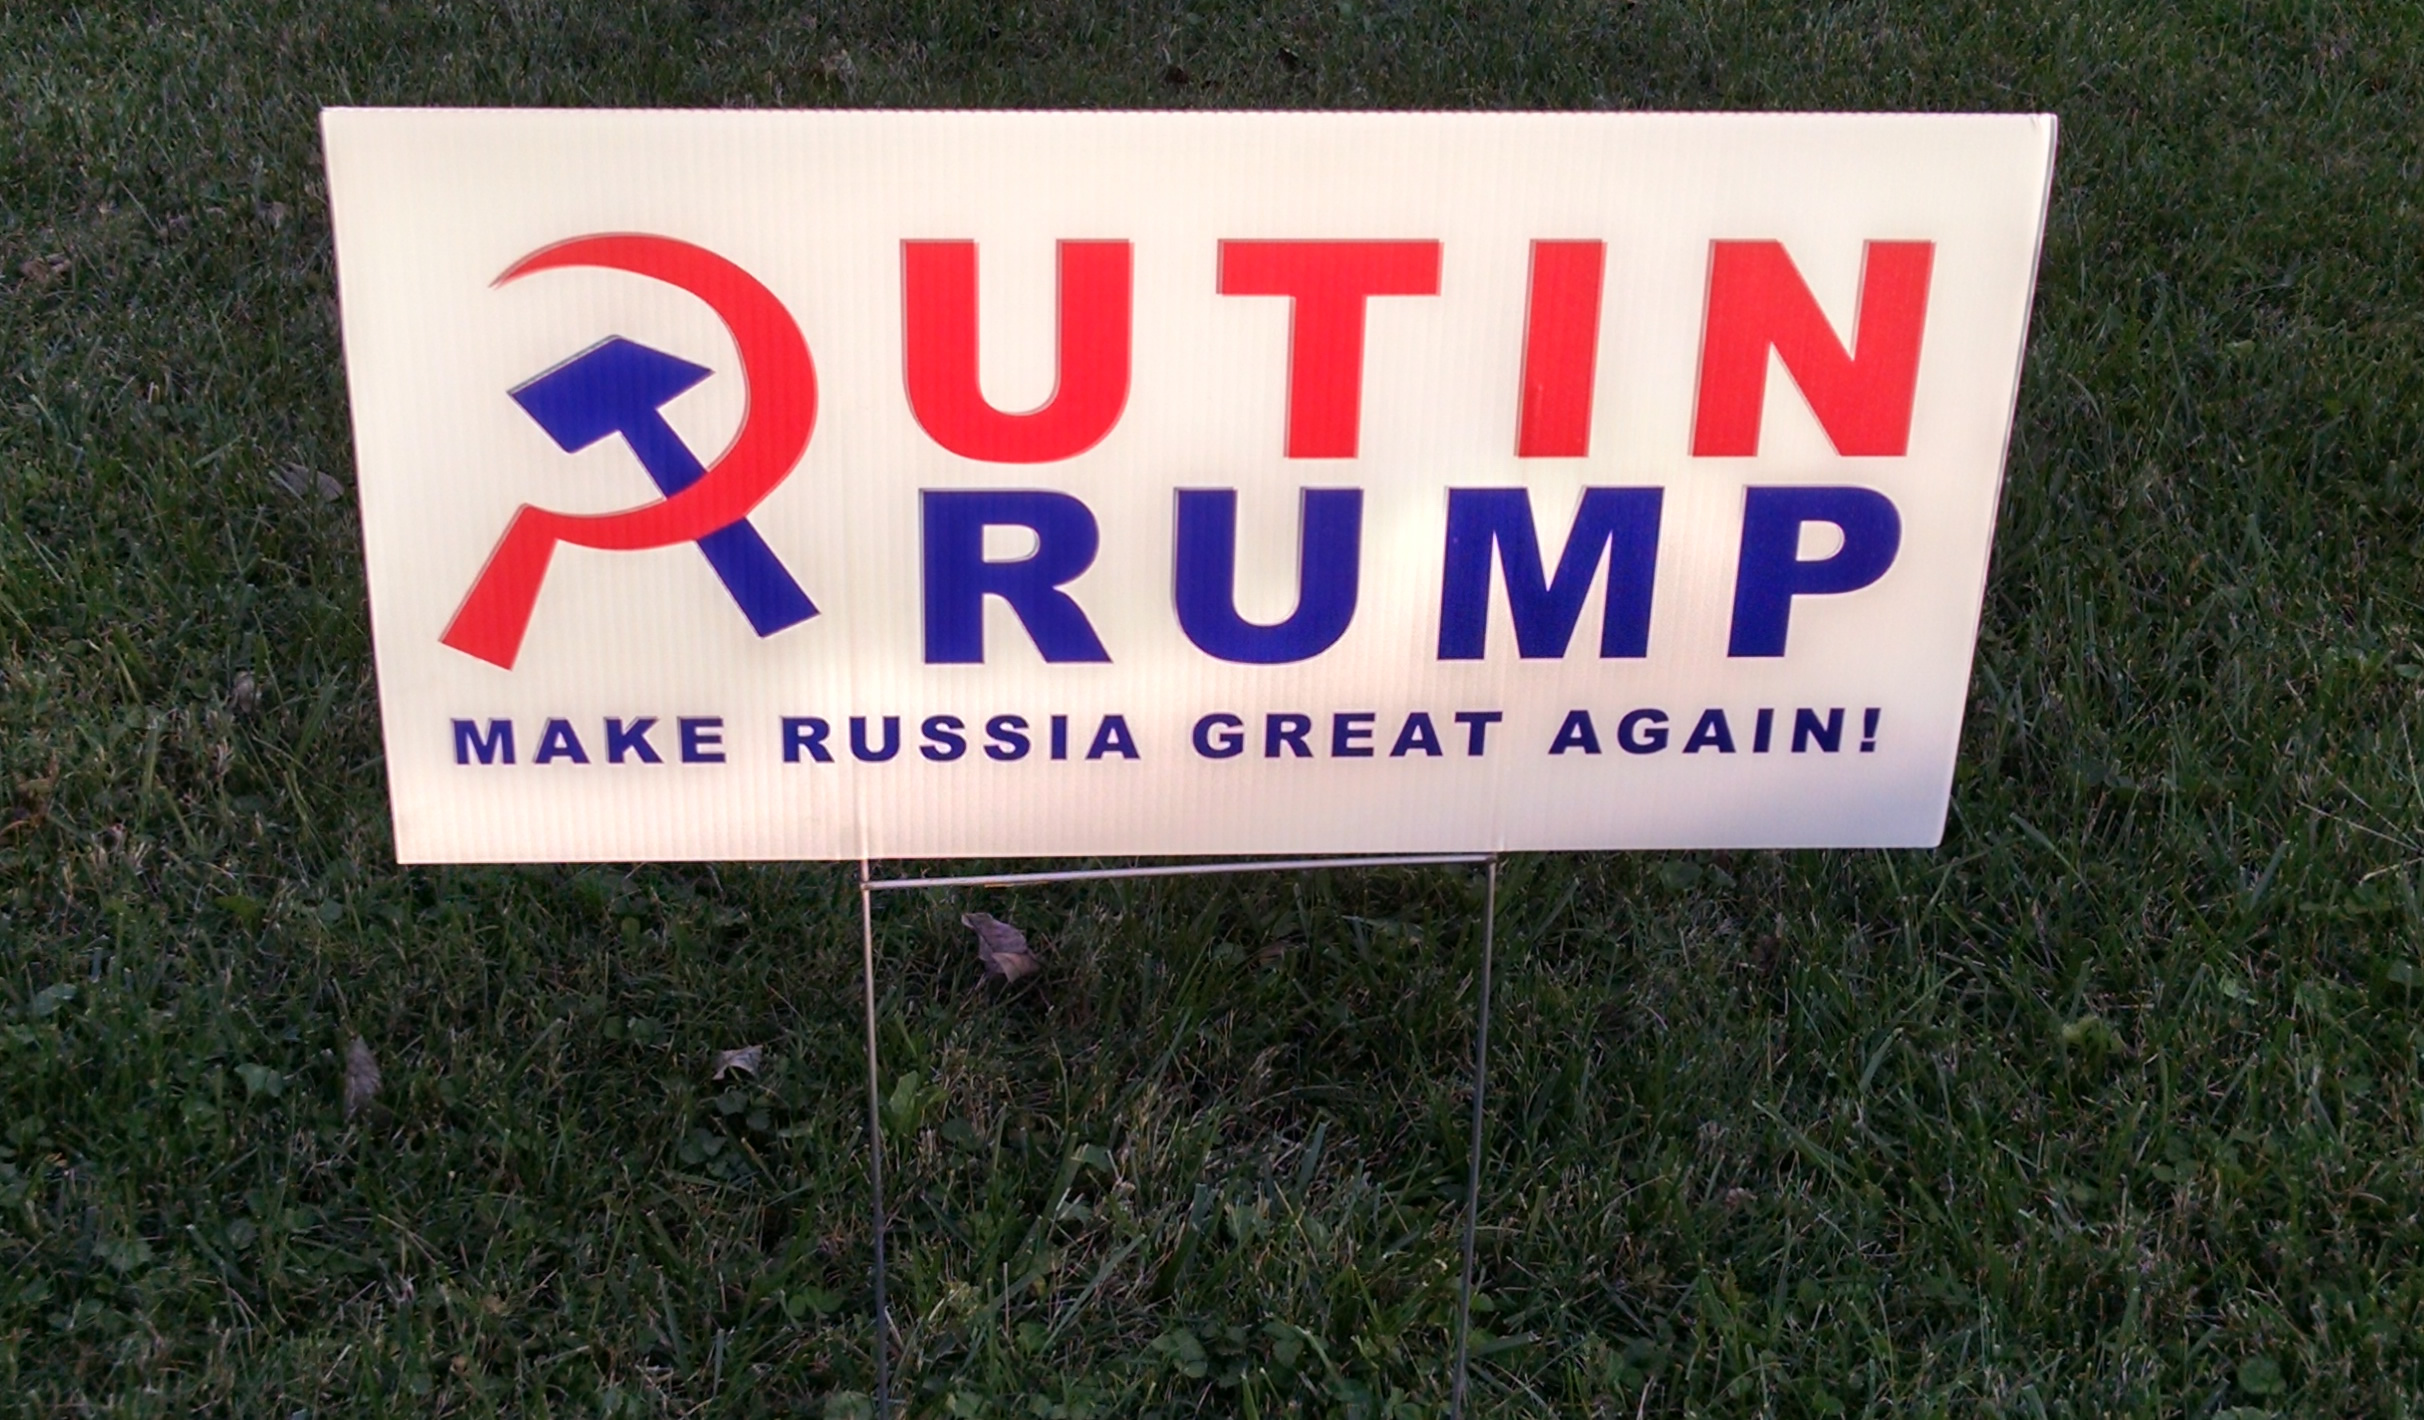 Putin/Trump: Make Russia Great Again!